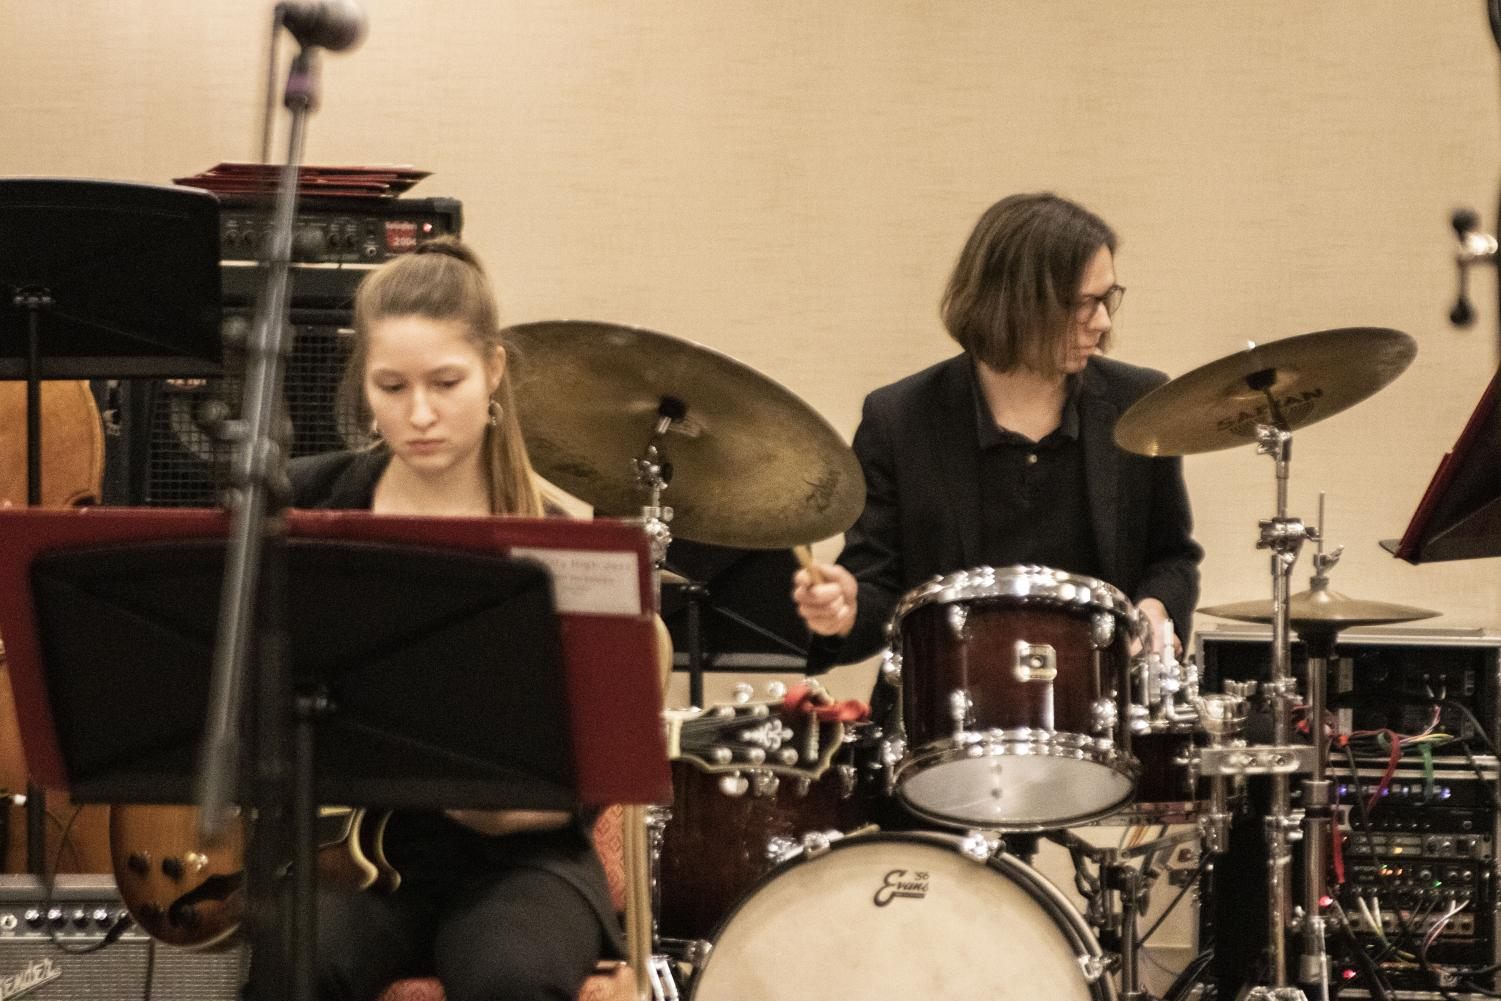 Ana+Koch+%2720+on+guitar+with+Peter+Stoltz+%2720+on+drums